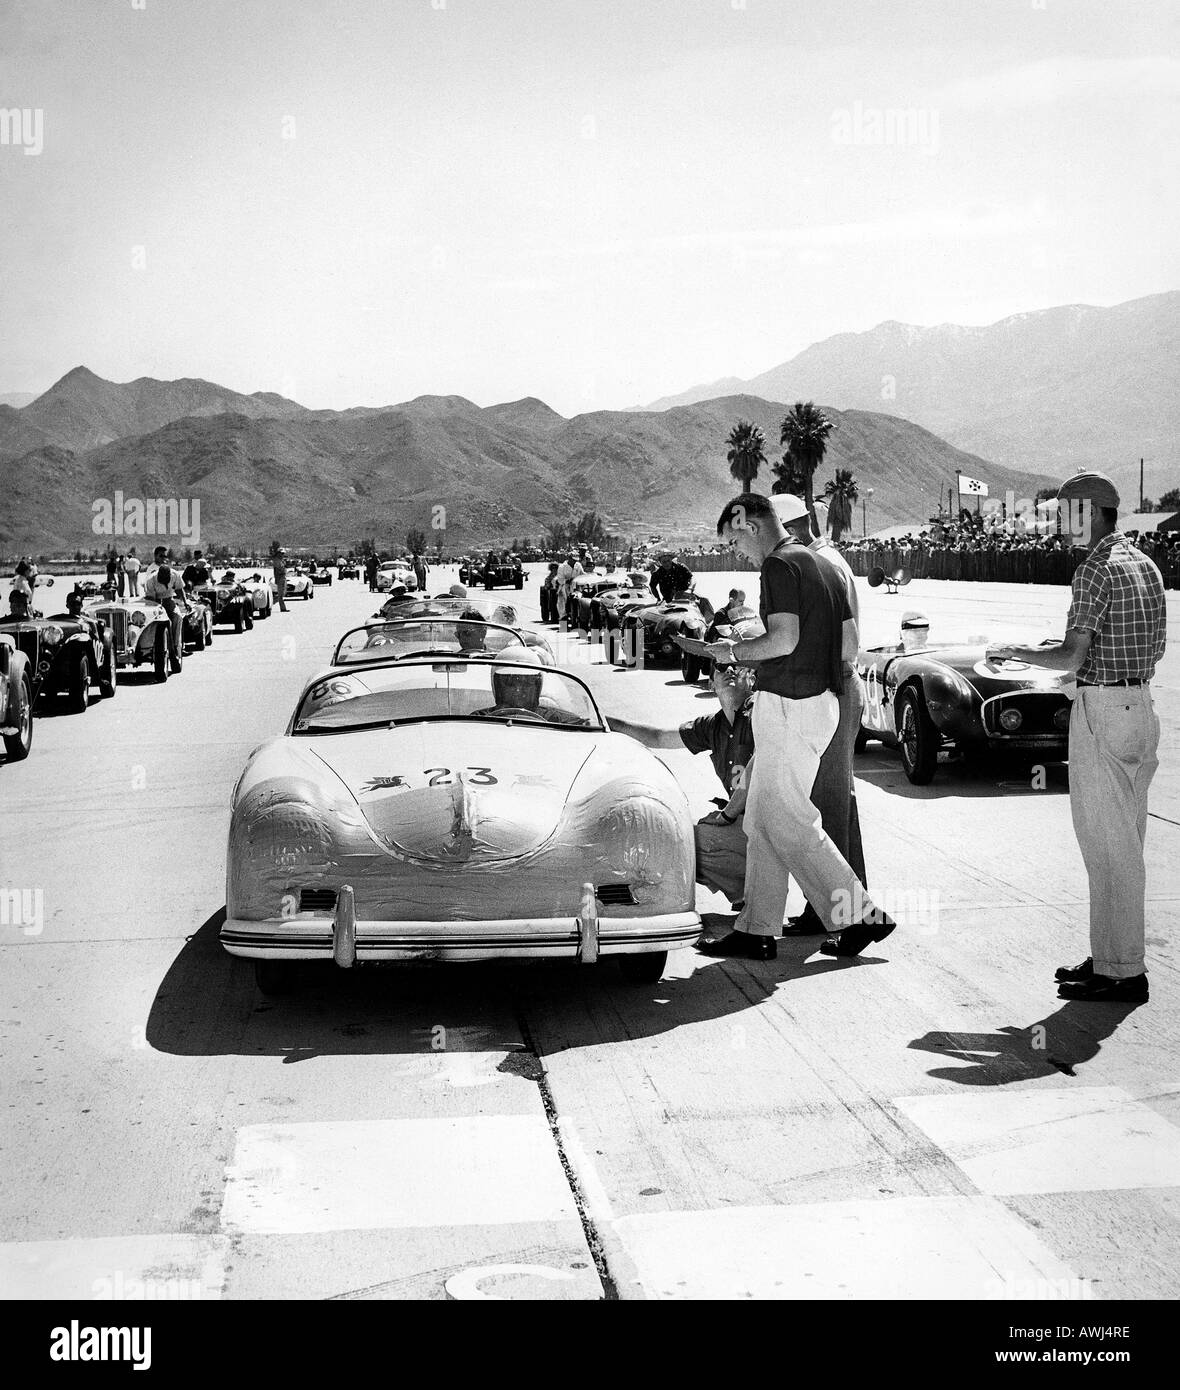 james dean in his porsche 550 spyder speedster at a california car rally about 1954 he